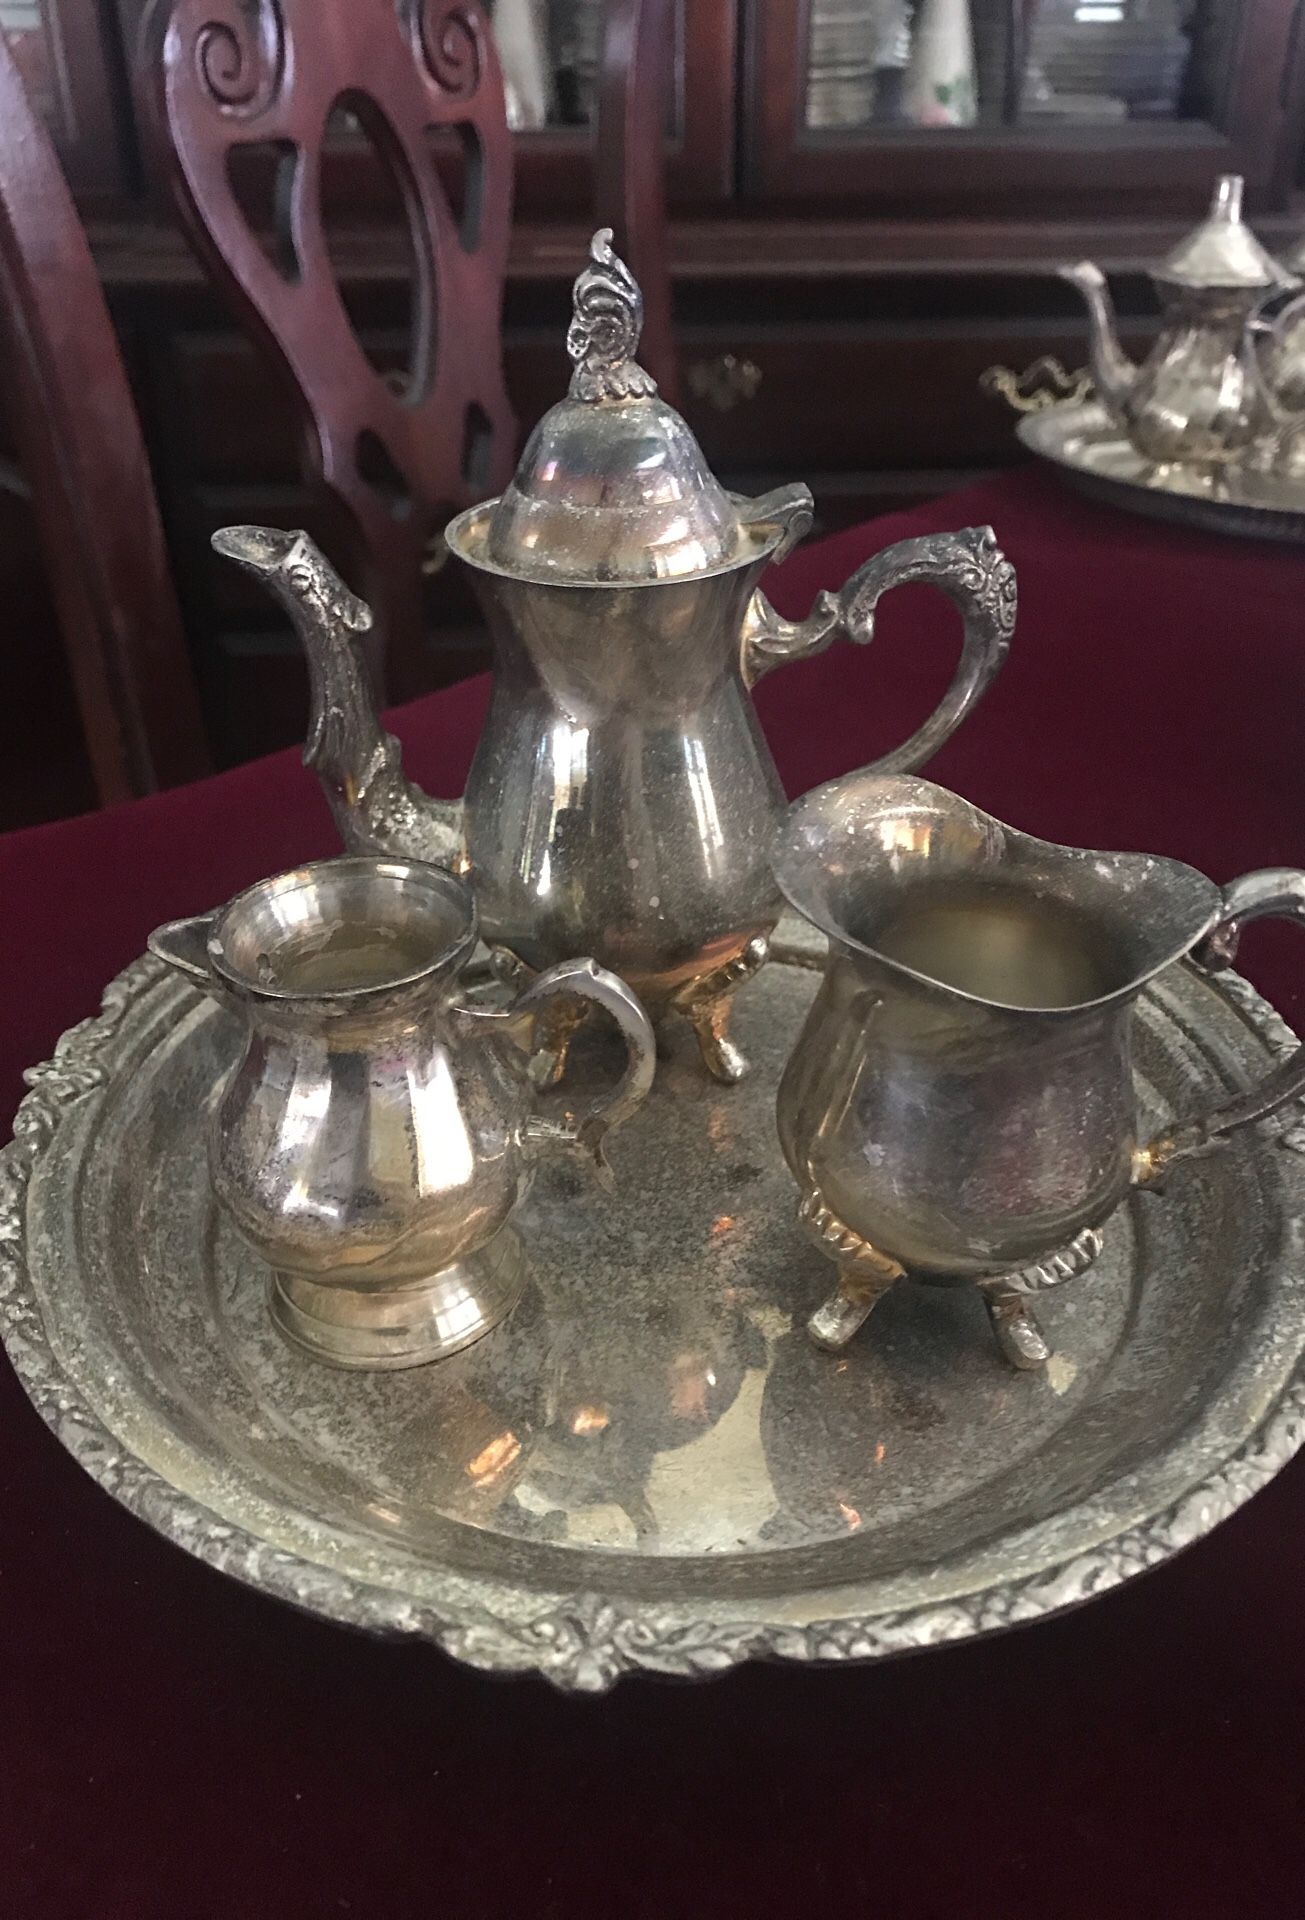 Miniature silver tea, and creamer set, will throw in salt and pepper shaker